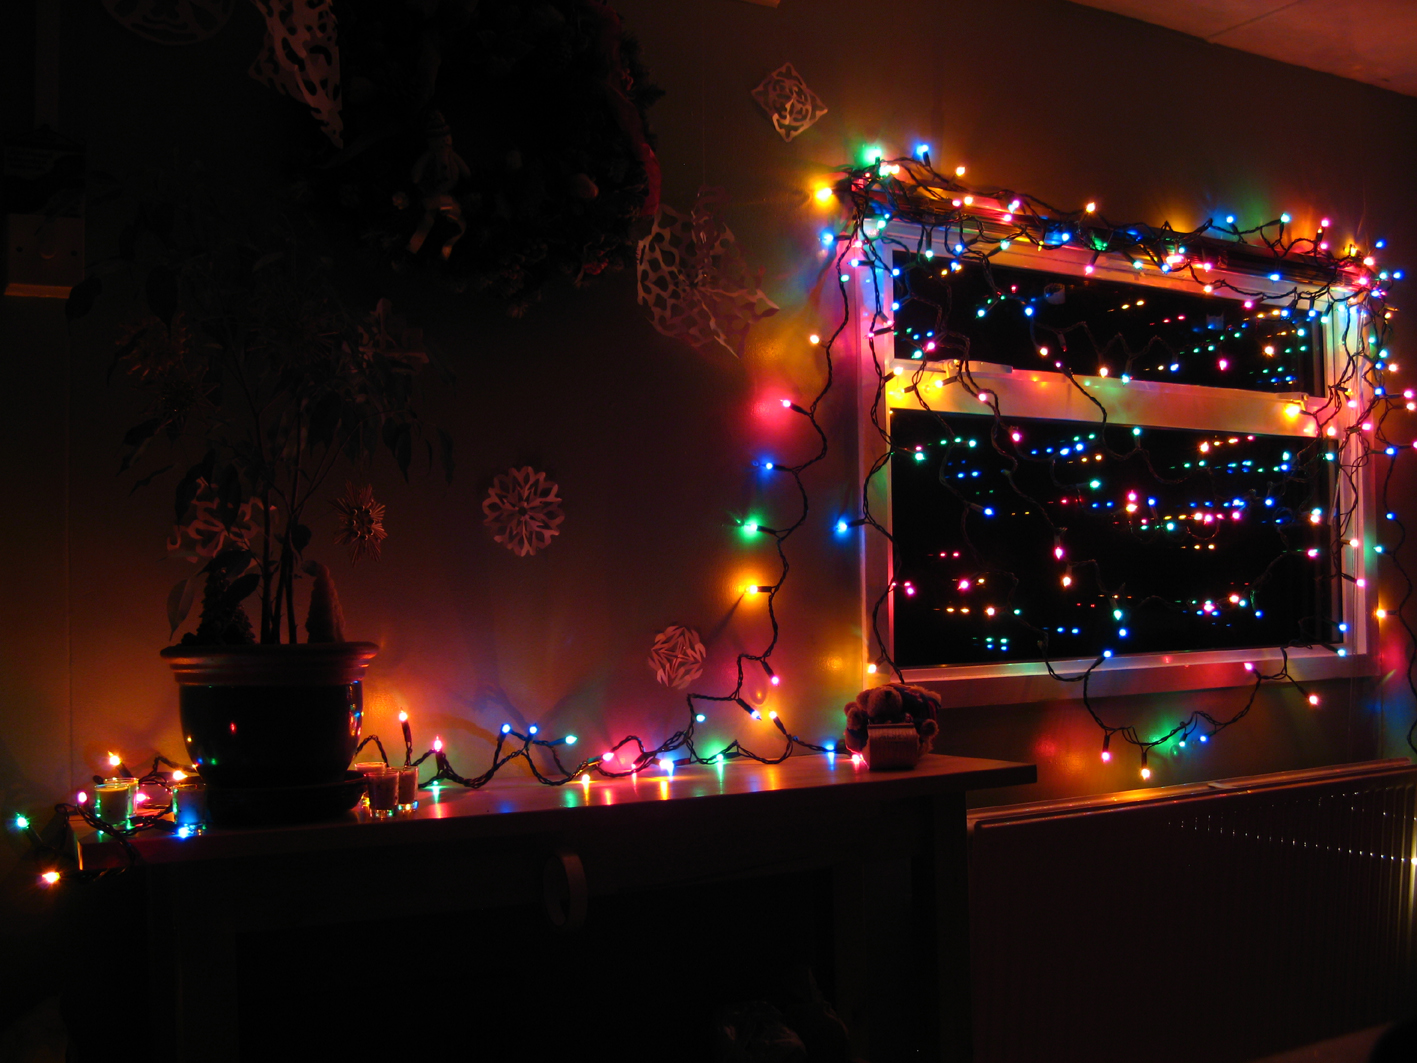 Led Christmas Lights 7 Desktop Wallpaper   Hivewallpapercom 1417x1063